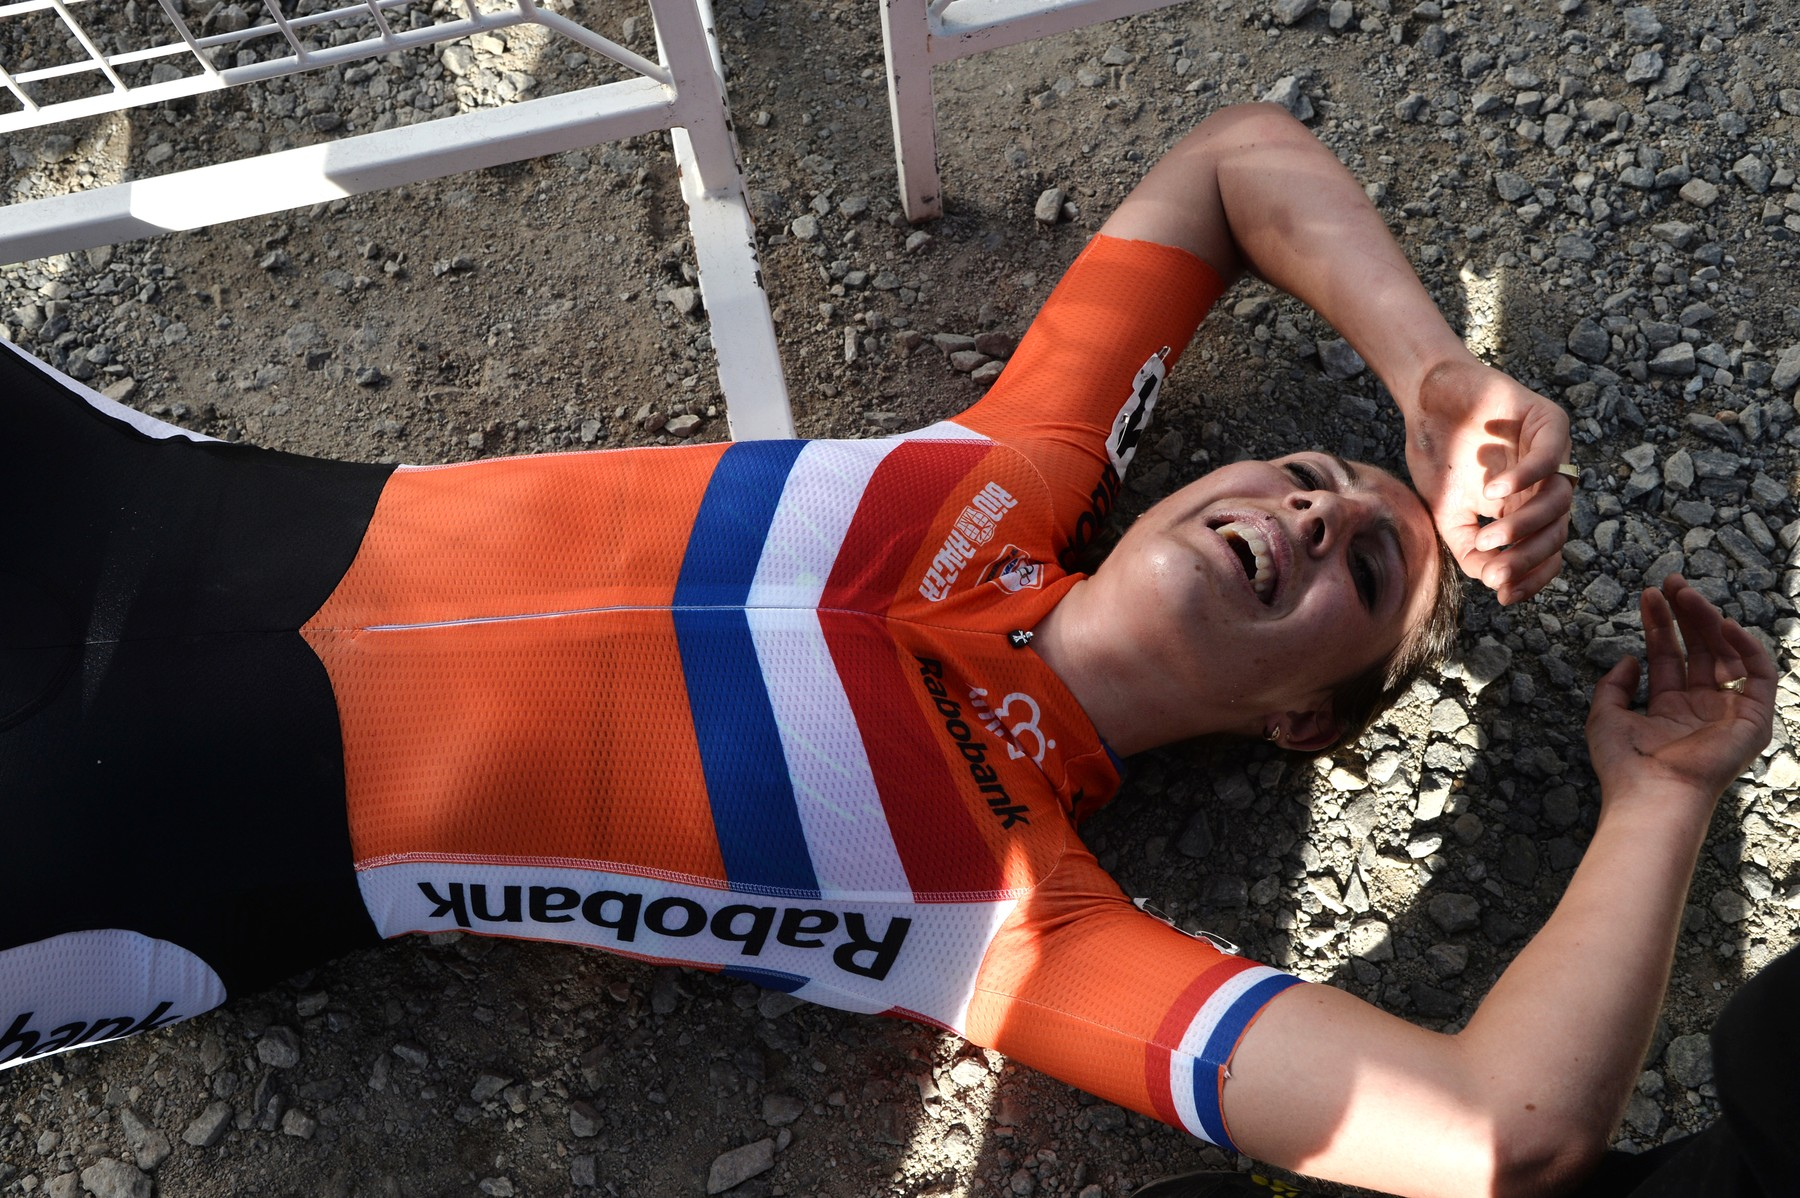 Dutch cyclist Lucinda Brand lies on the ground after finishing the Women Elite European Cyclocross Championships at the second place, on October 30, 2016, in Pontchateau, France.